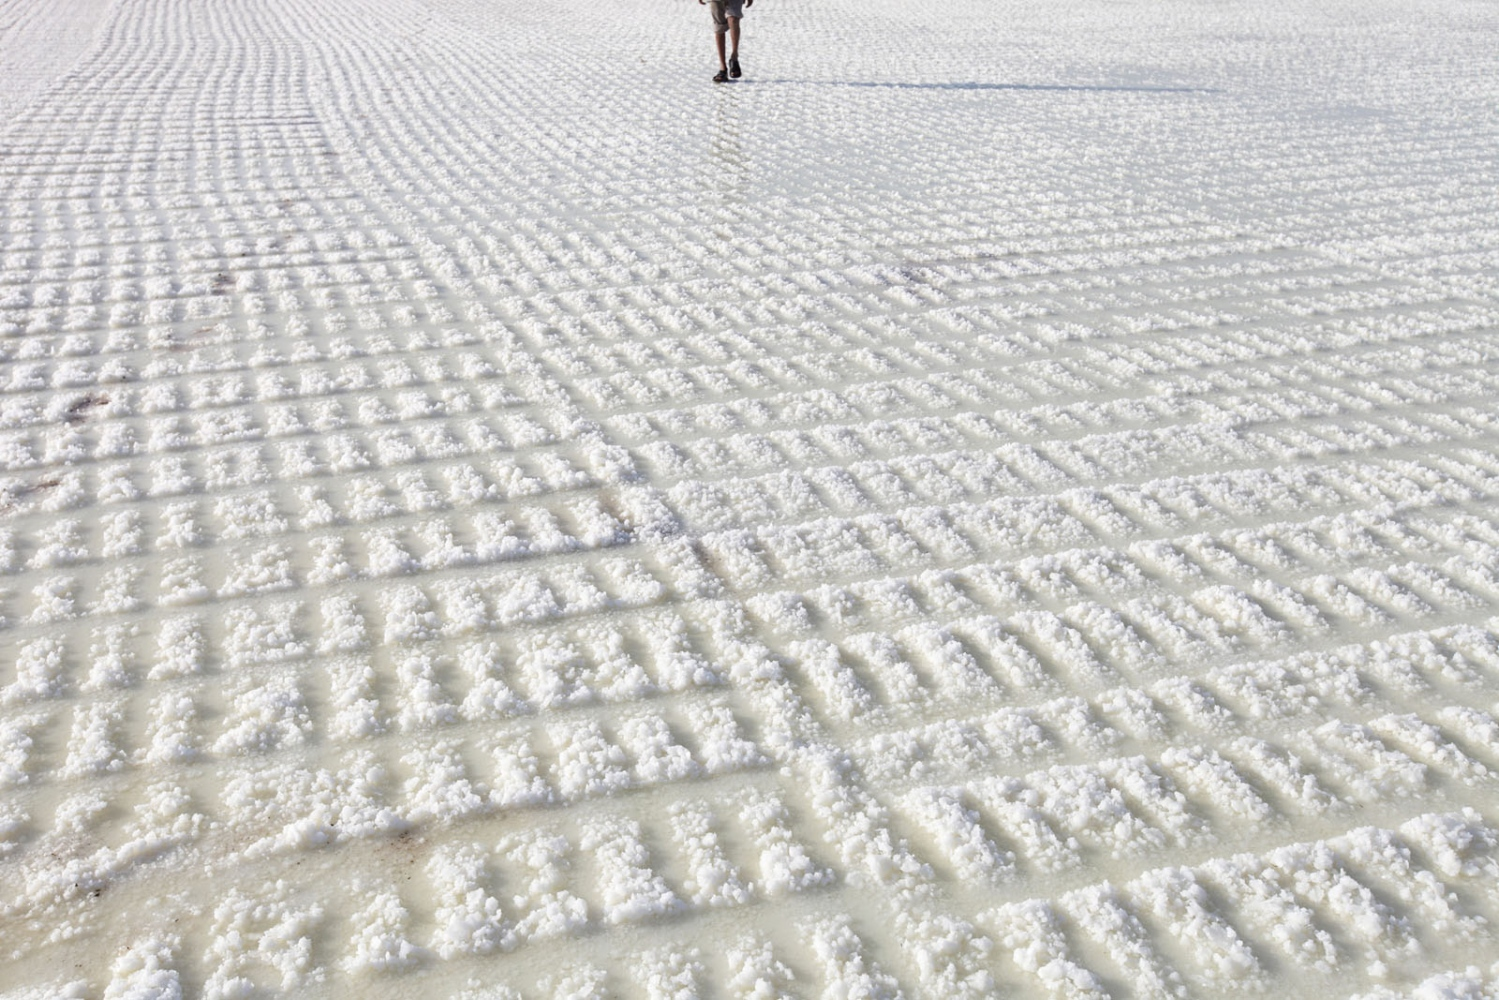 A salt worker walks across salt that is ready to harvest in the Little Rann of Kutch. Gujarat, India.